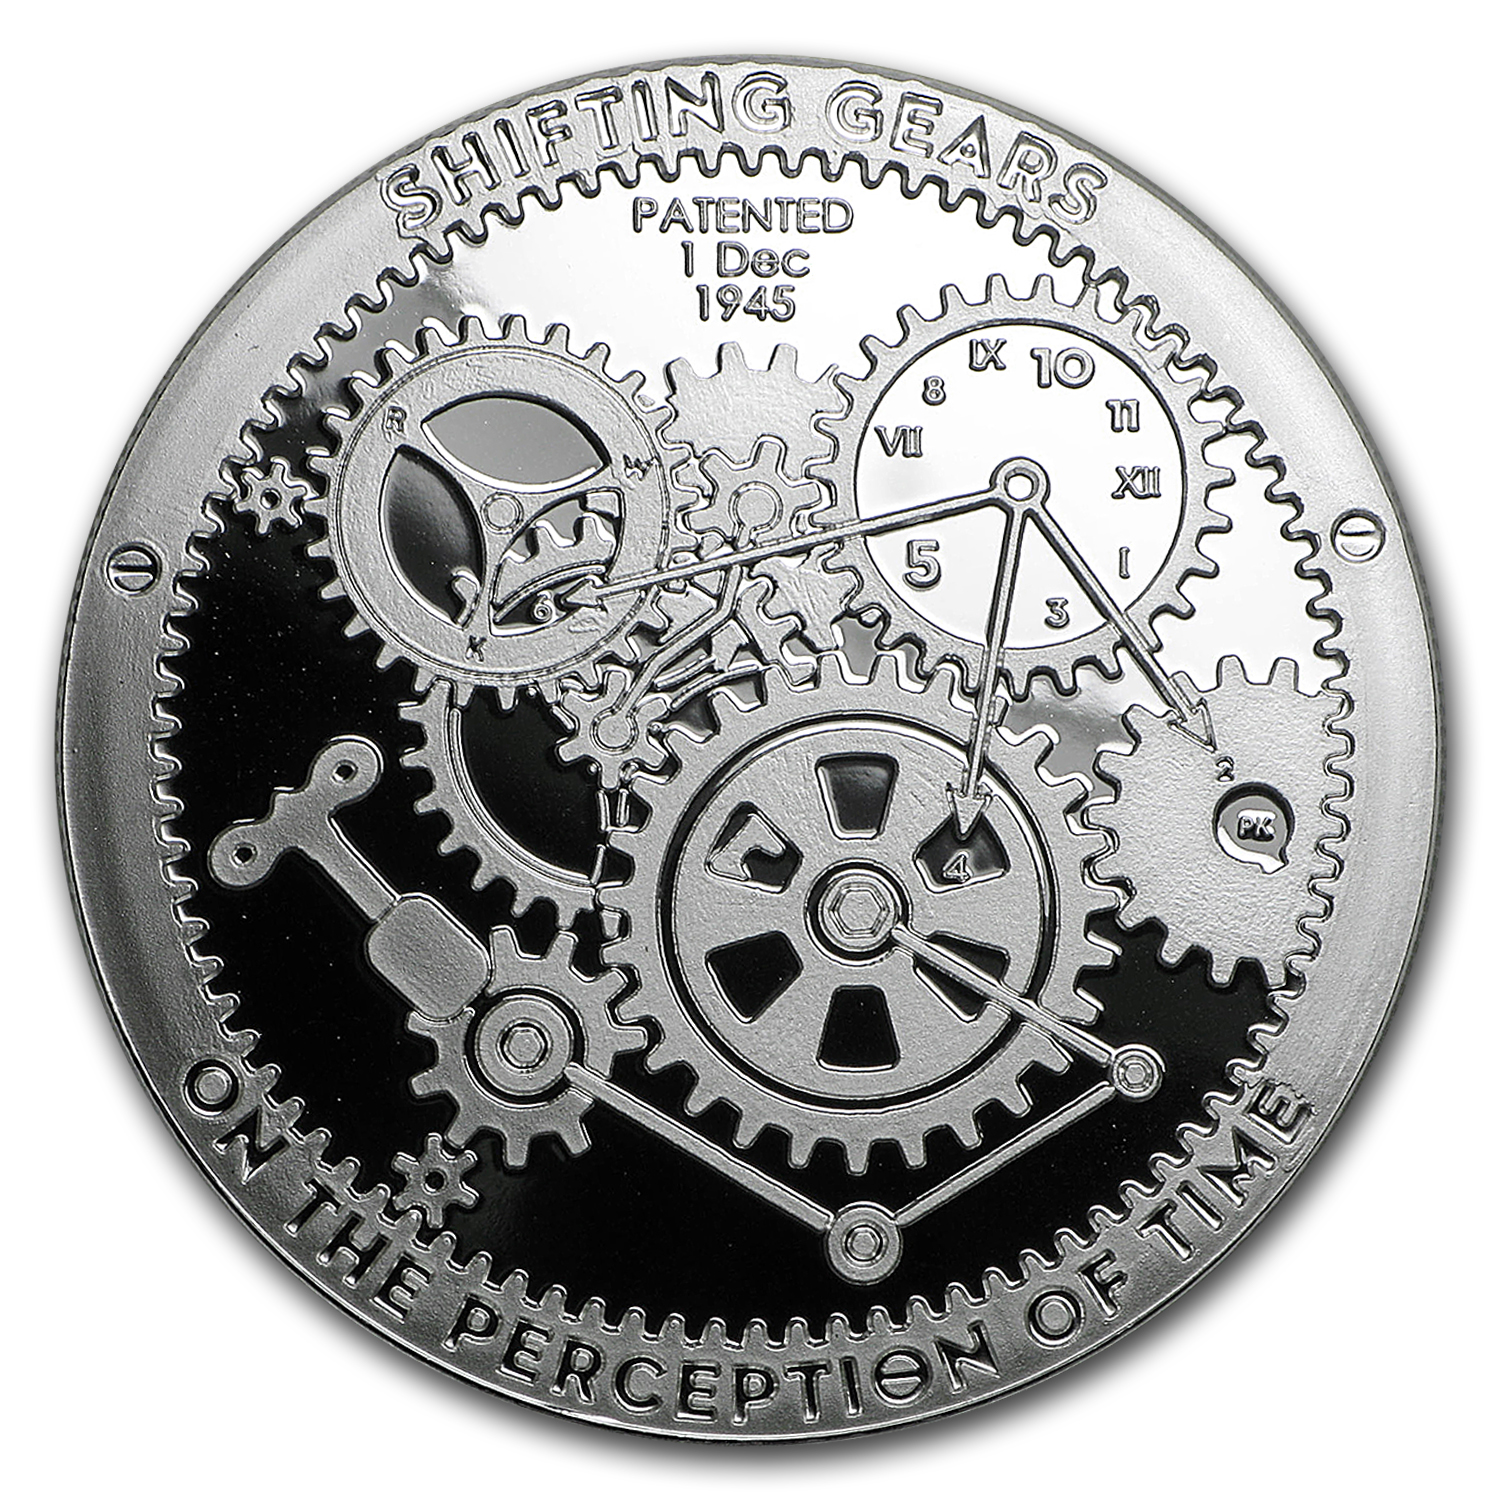 1 oz Silver Round - Shifting Gears